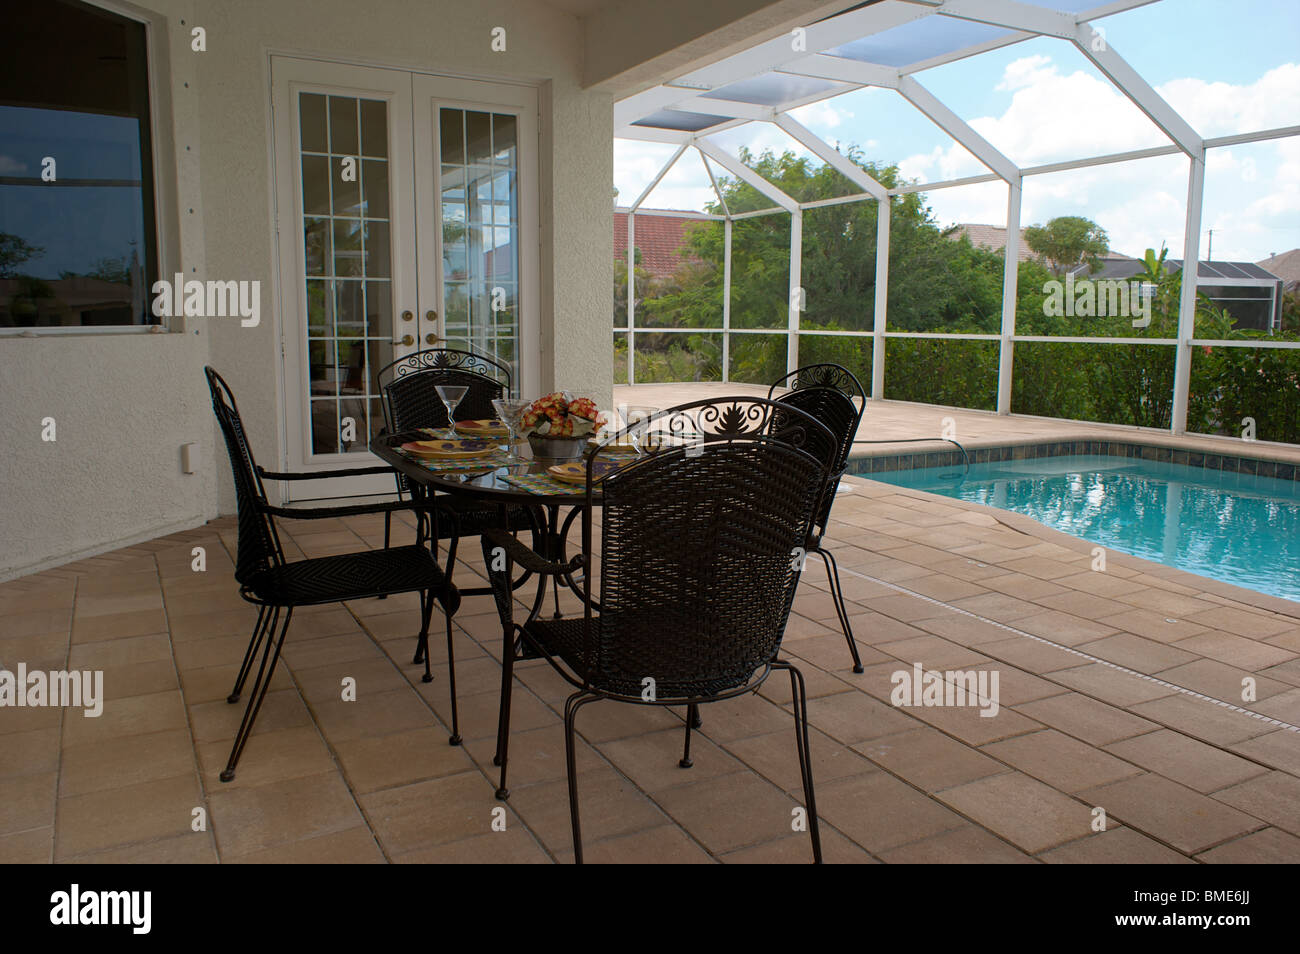 Stock Photo   A Table Is Set For Dinner On An Outside Patio Or Lanai With  Swimming Pool In Background, The Patio Is Screened In